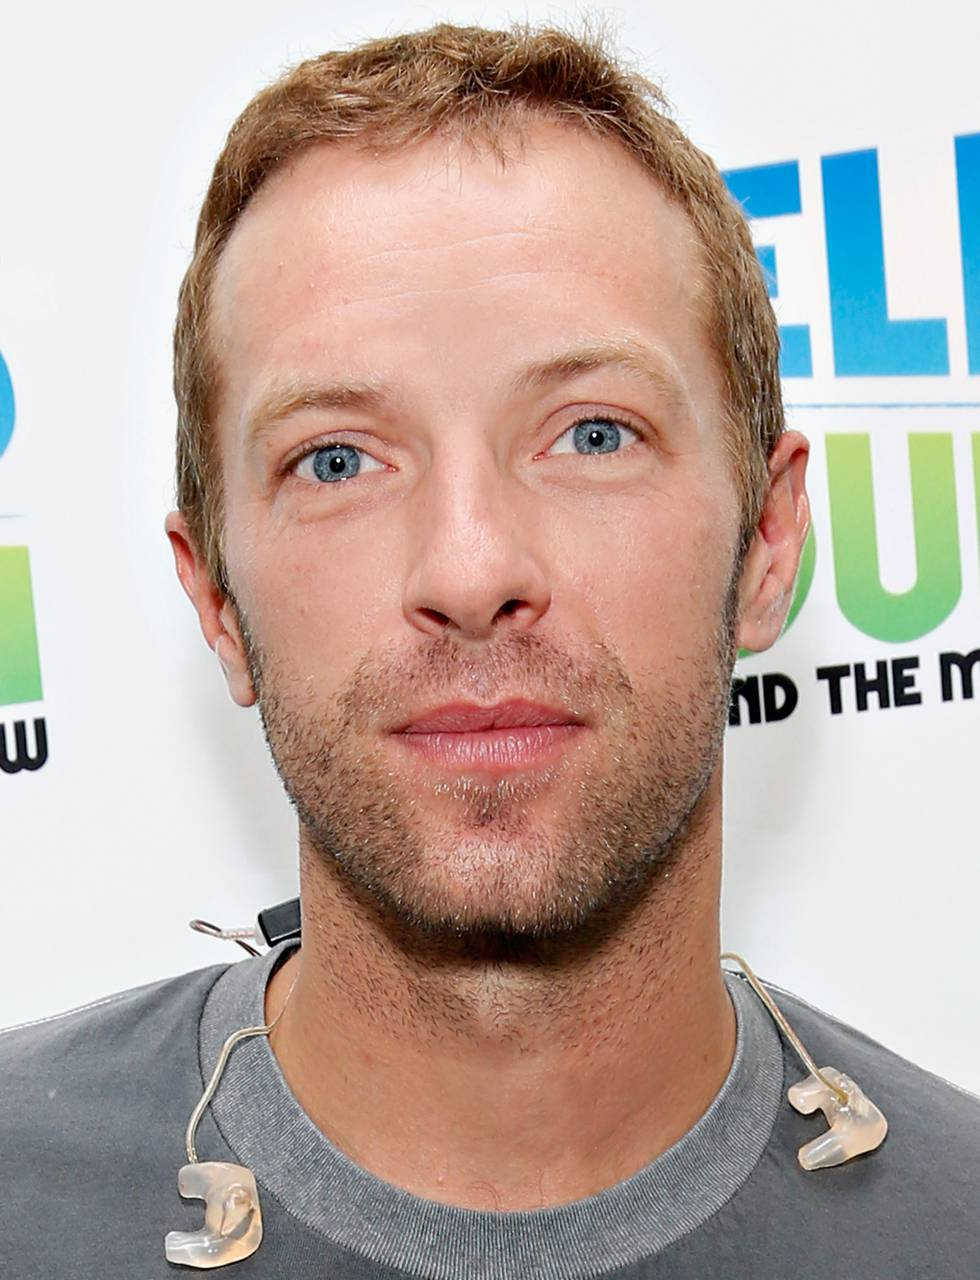 Chris Martin, cantante de Coldplay.